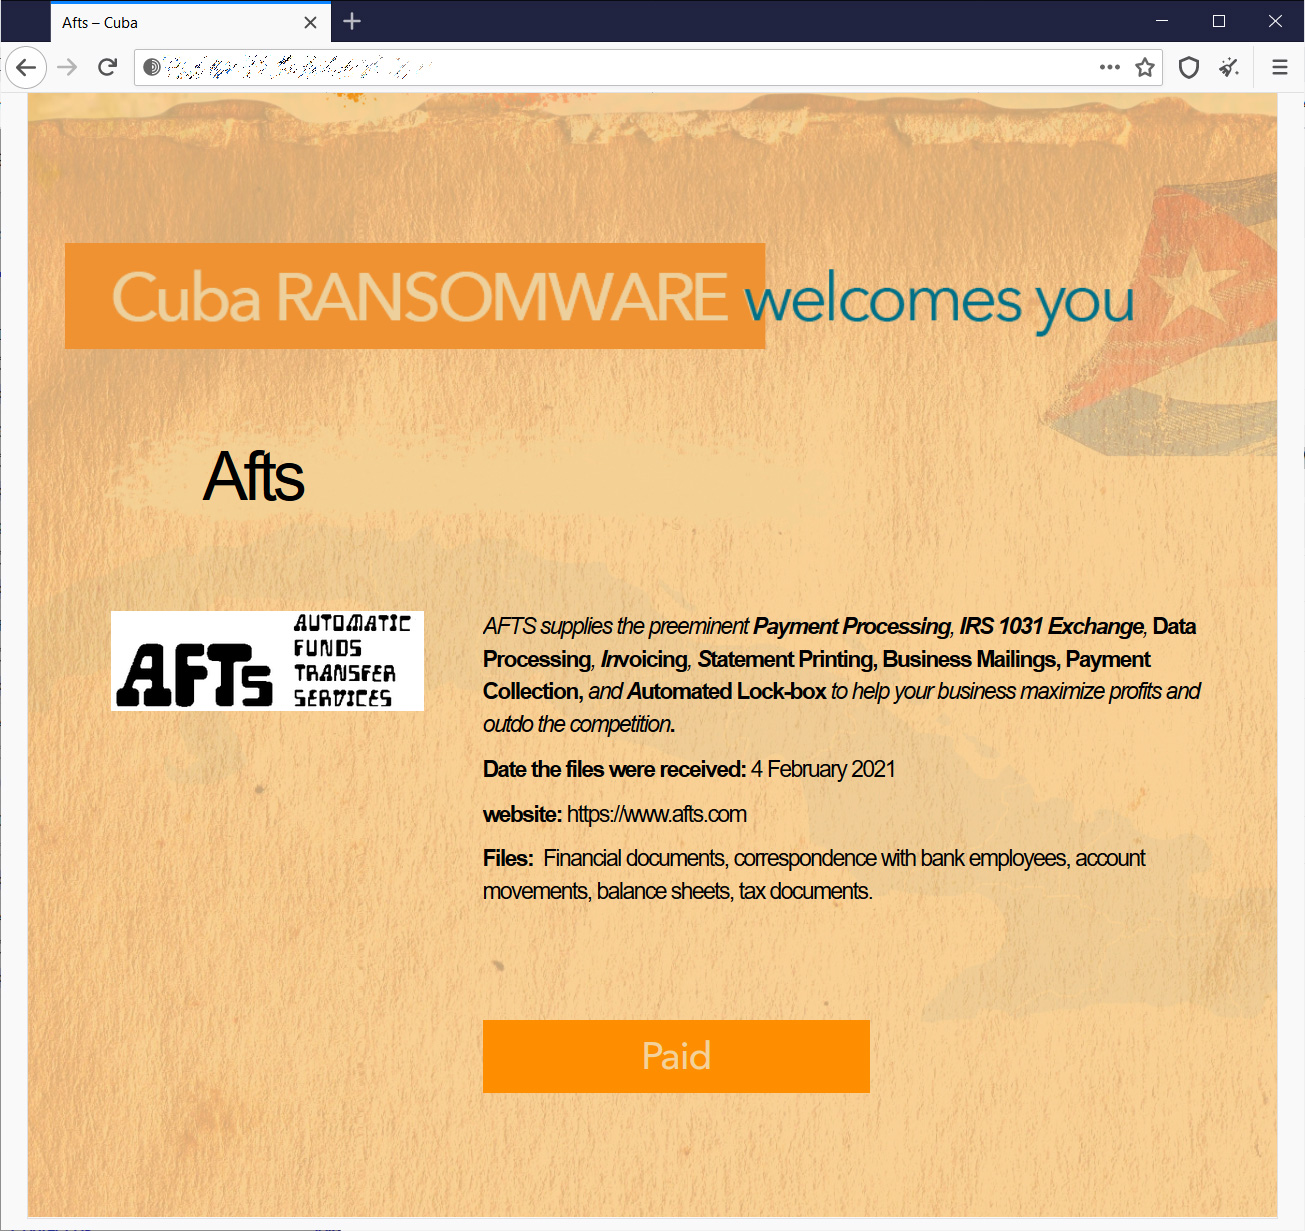 Cuba ransomware data leak page for AFTS